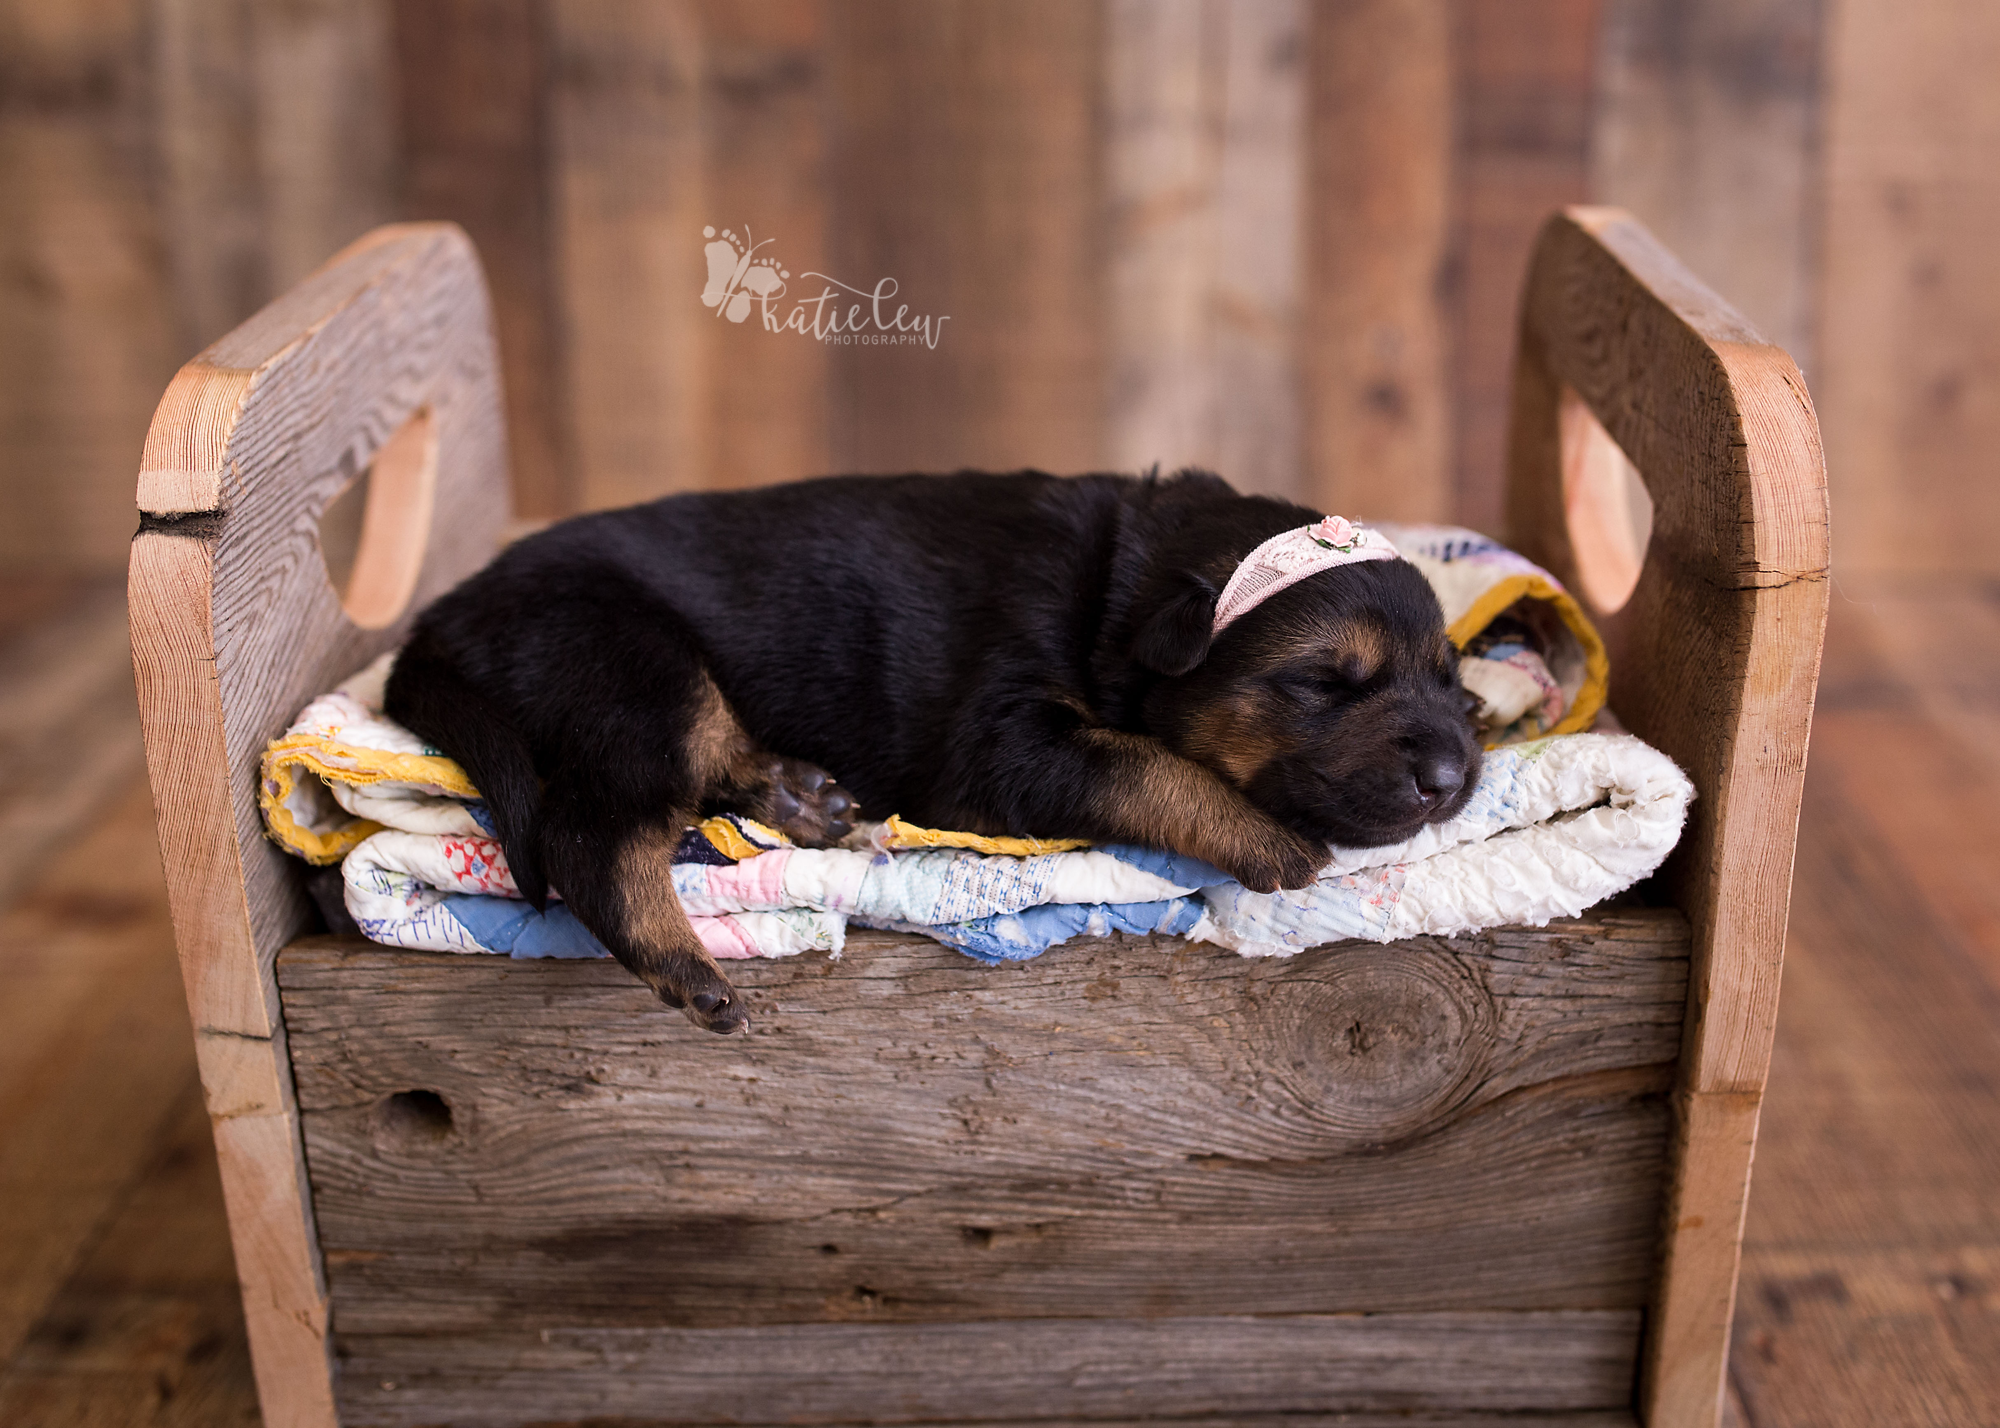 german shepherd puppy laying in a bed on quilts